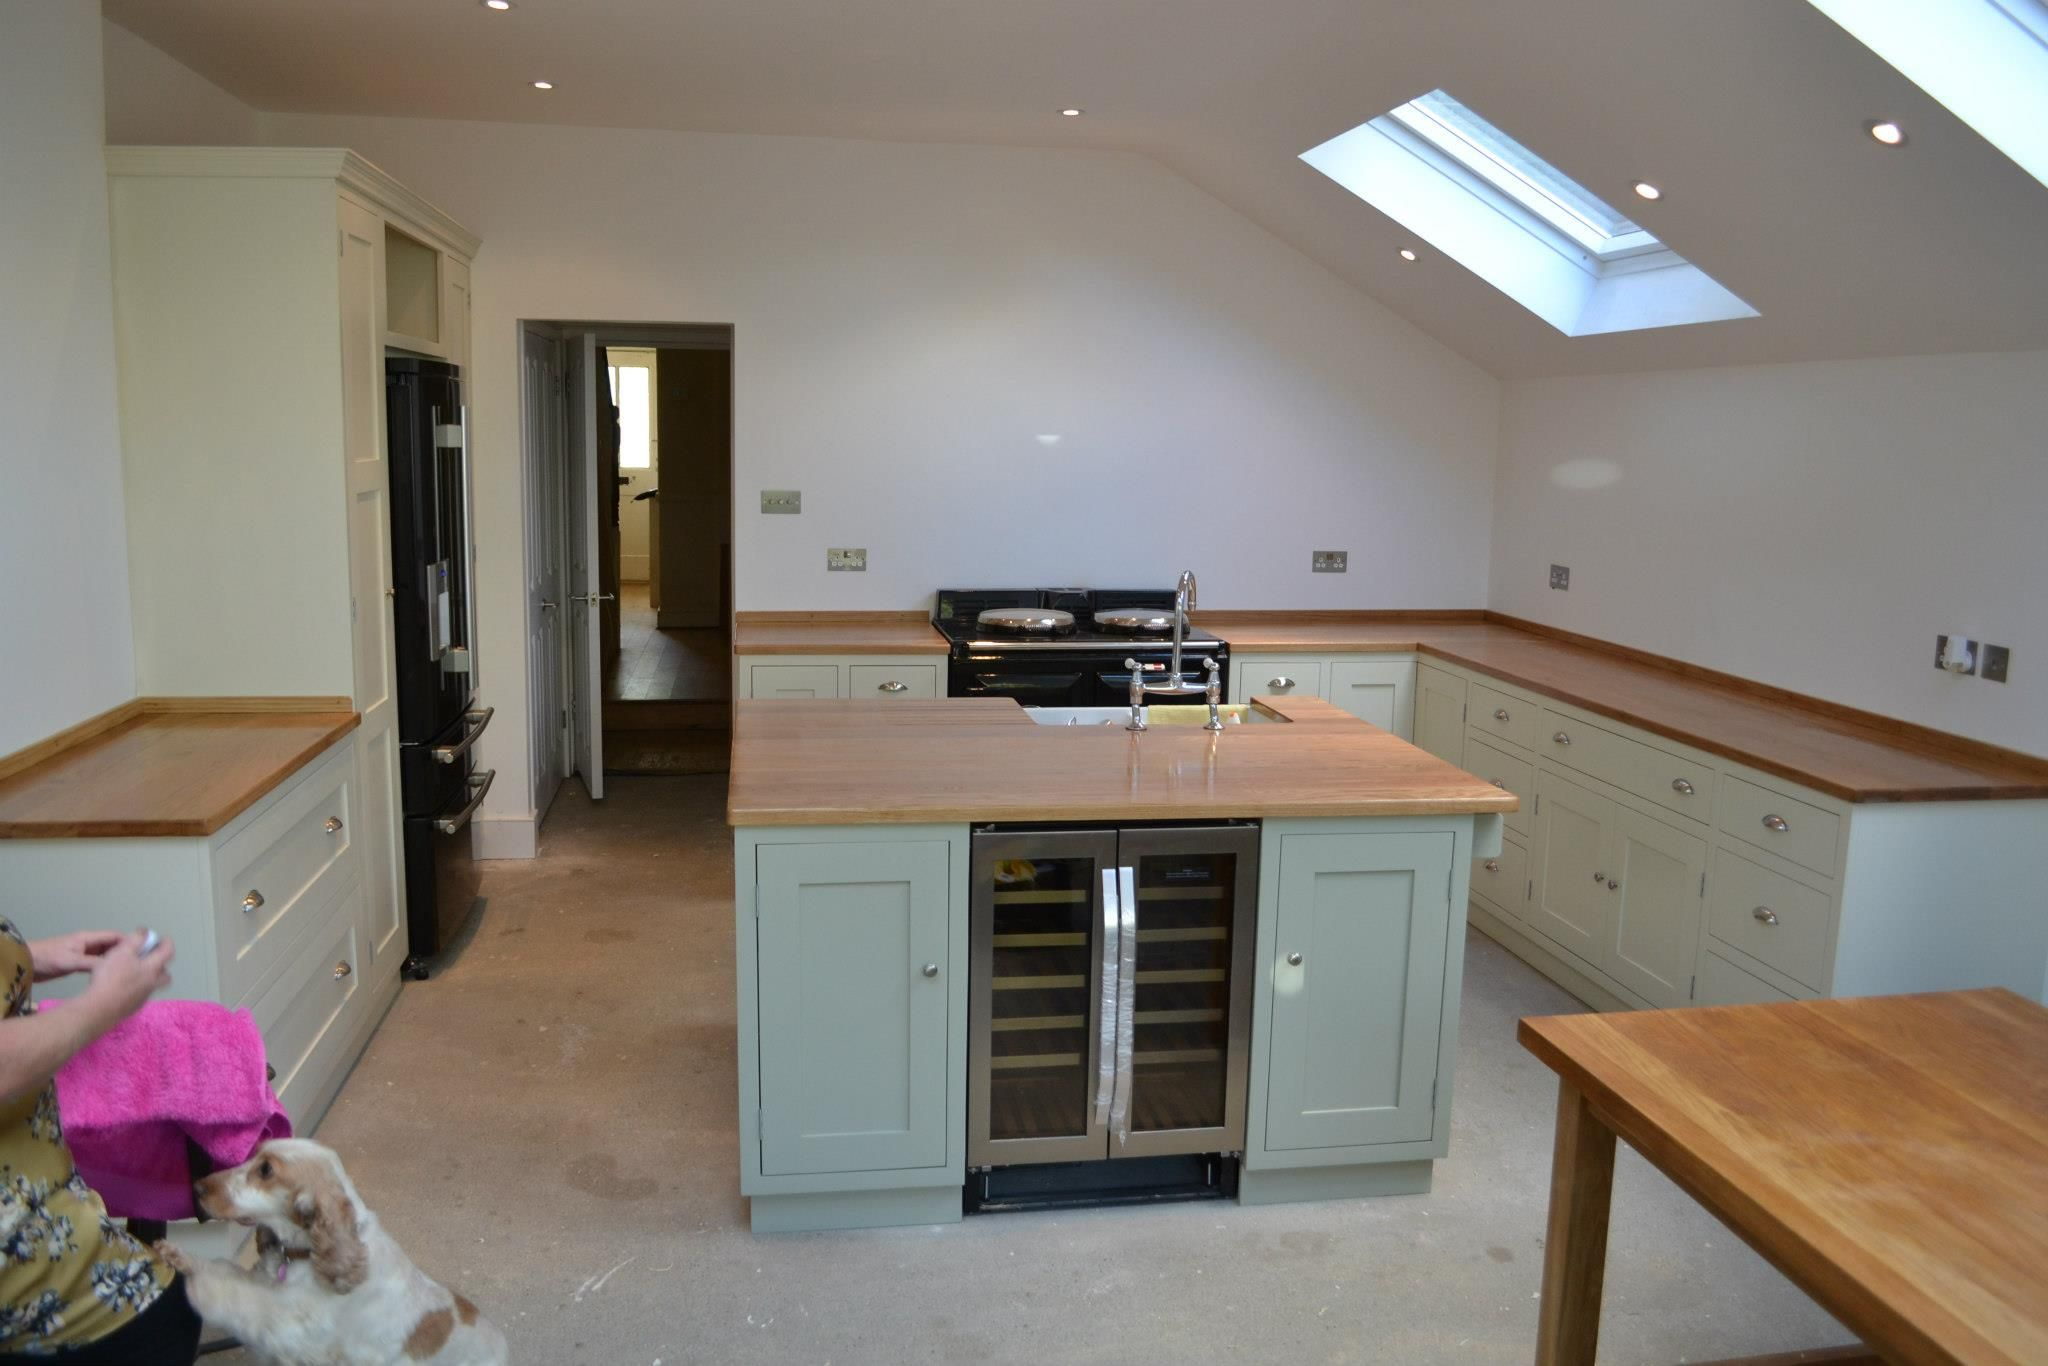 The Richmond Kitchen, Bespoke Kitchens By Eridge Green Bespoke Kitchens And  Living Space, Shaker